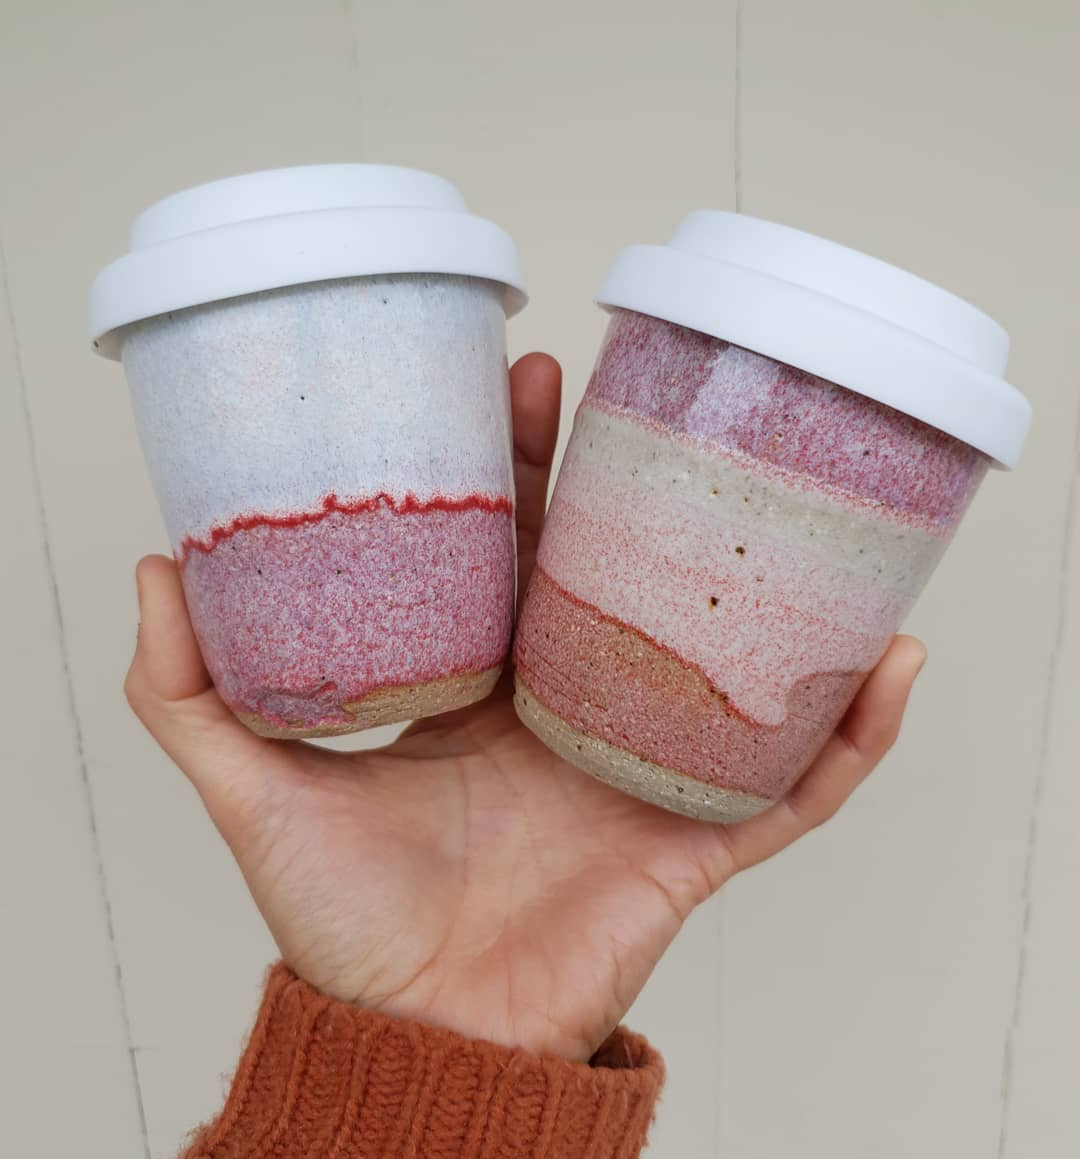 After something warm to wrap your cold hands around while out and about?I Just dropped these and more off reuseablecupwheelthrownstonewareceramicspotterymrsfisherspottery